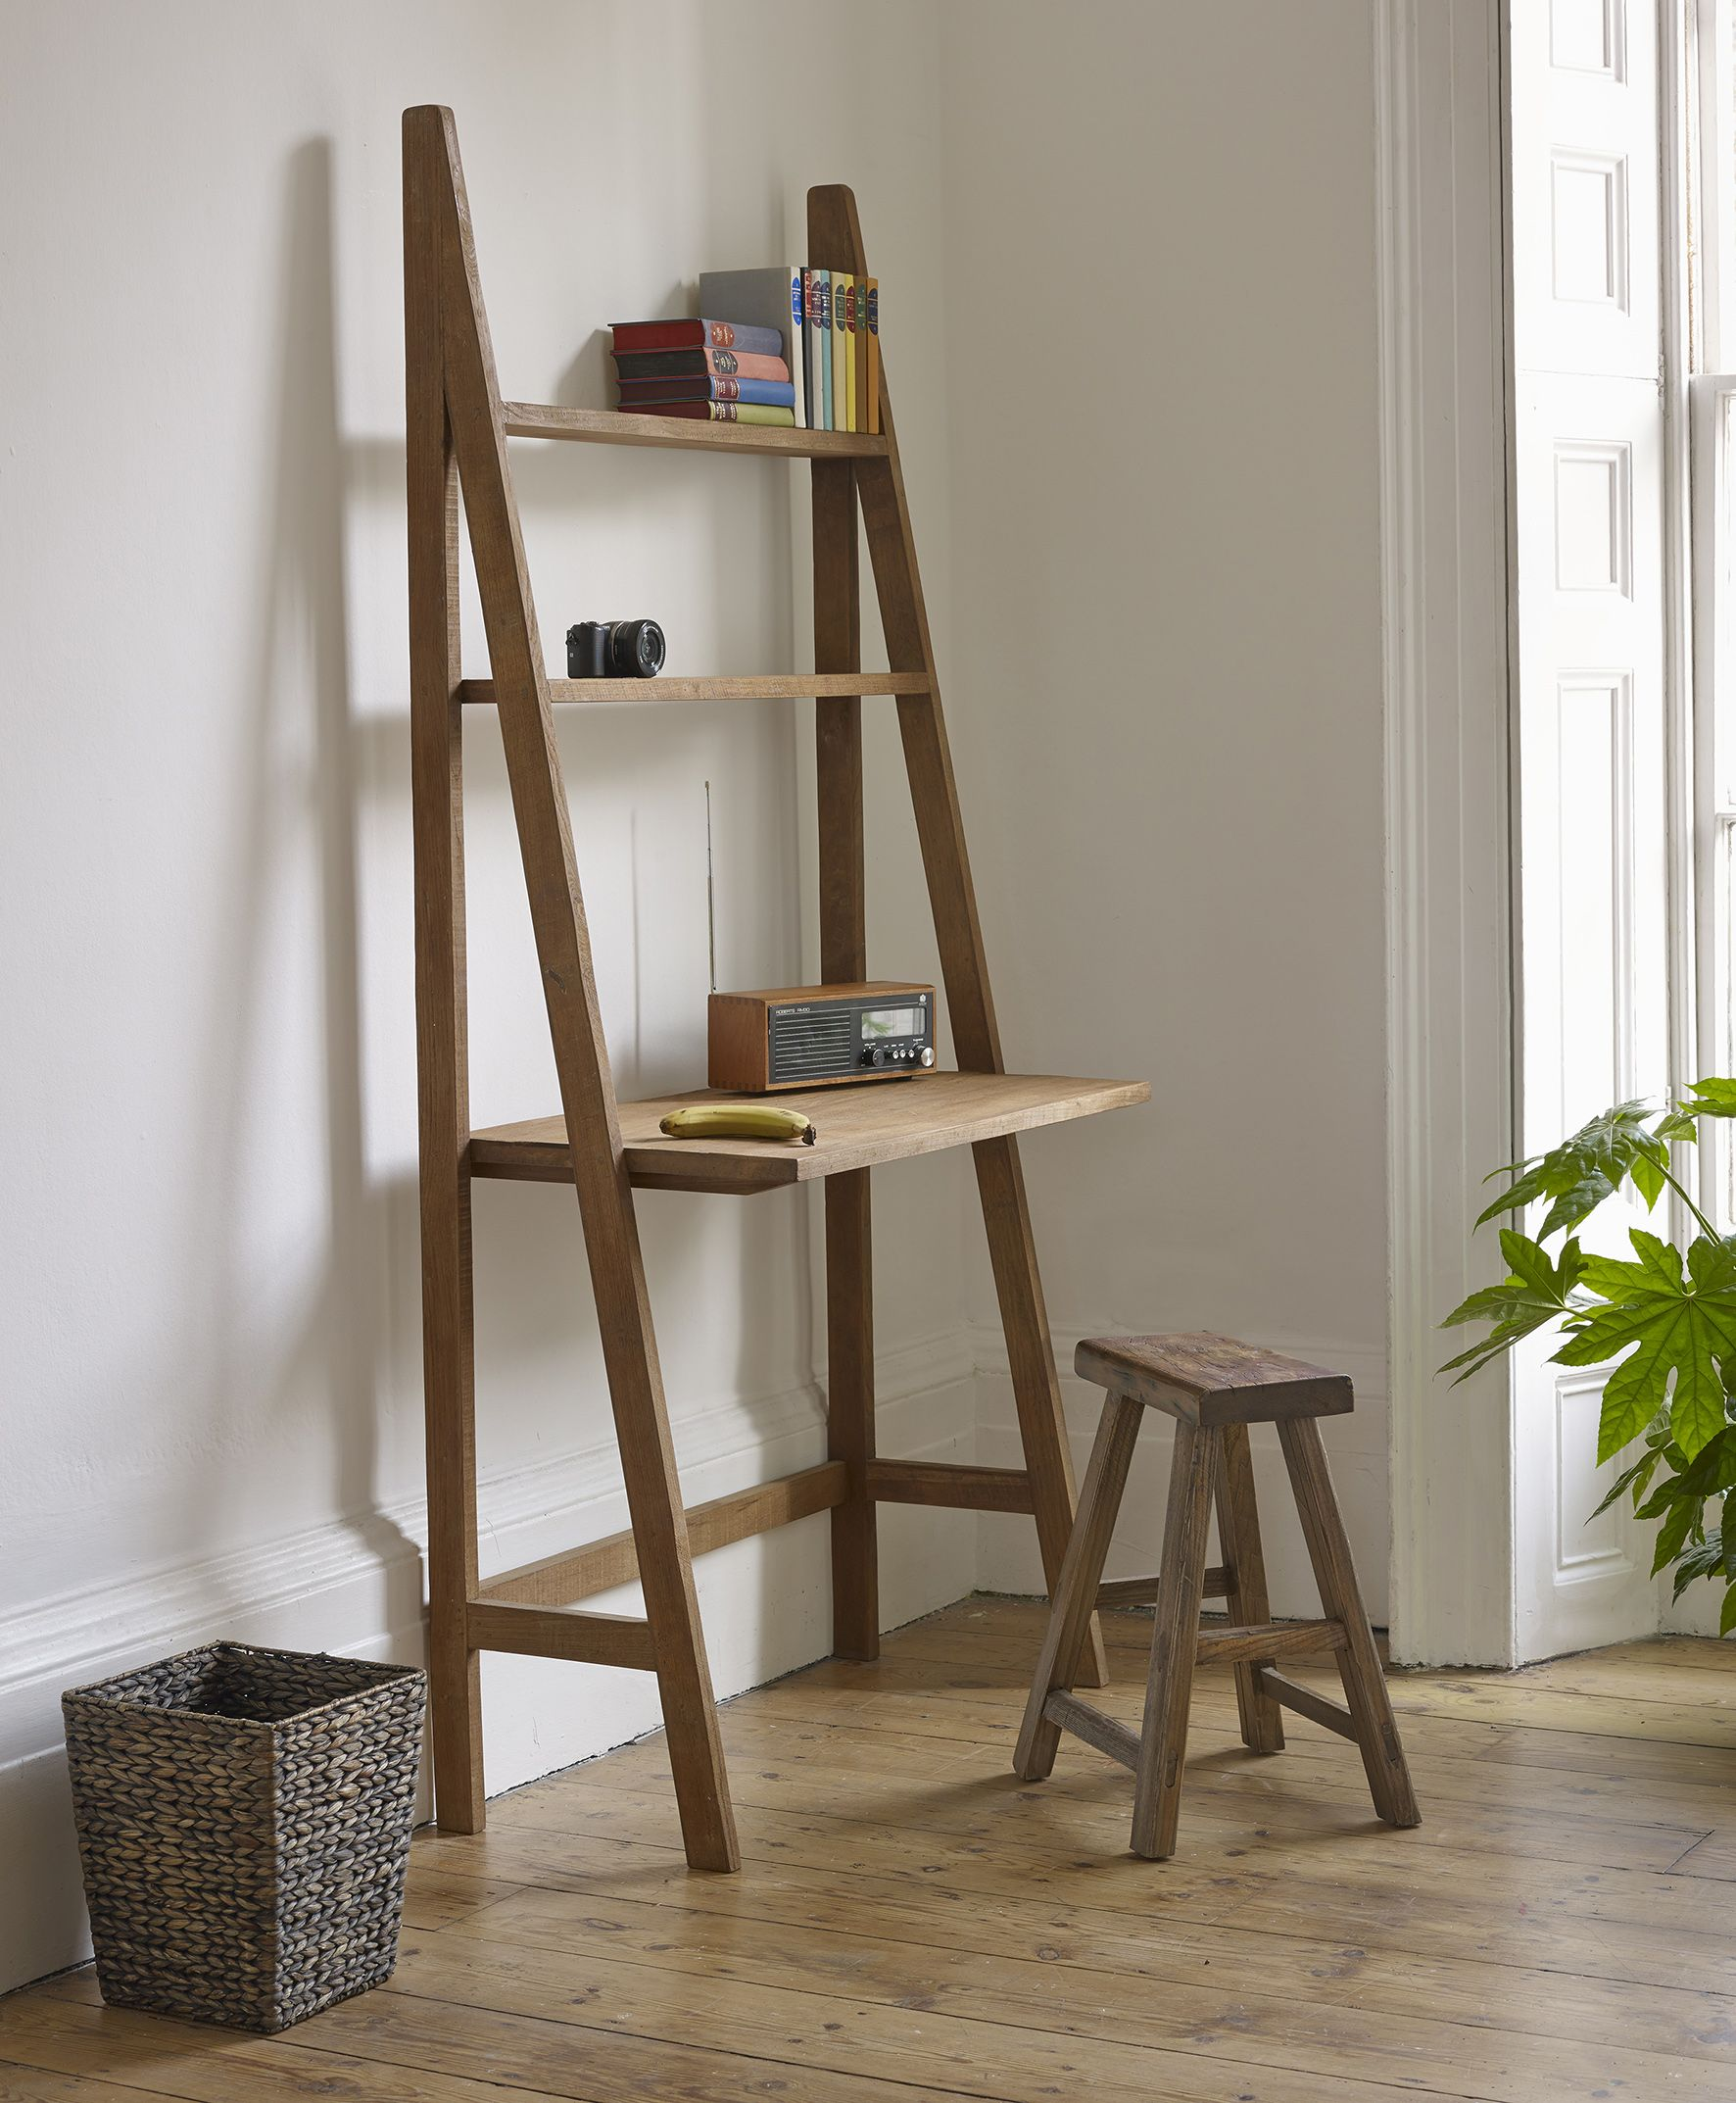 Homeoffice Space Design Ideas: Our Sumatra Desk Ladders Are Handmade In Indonesia From